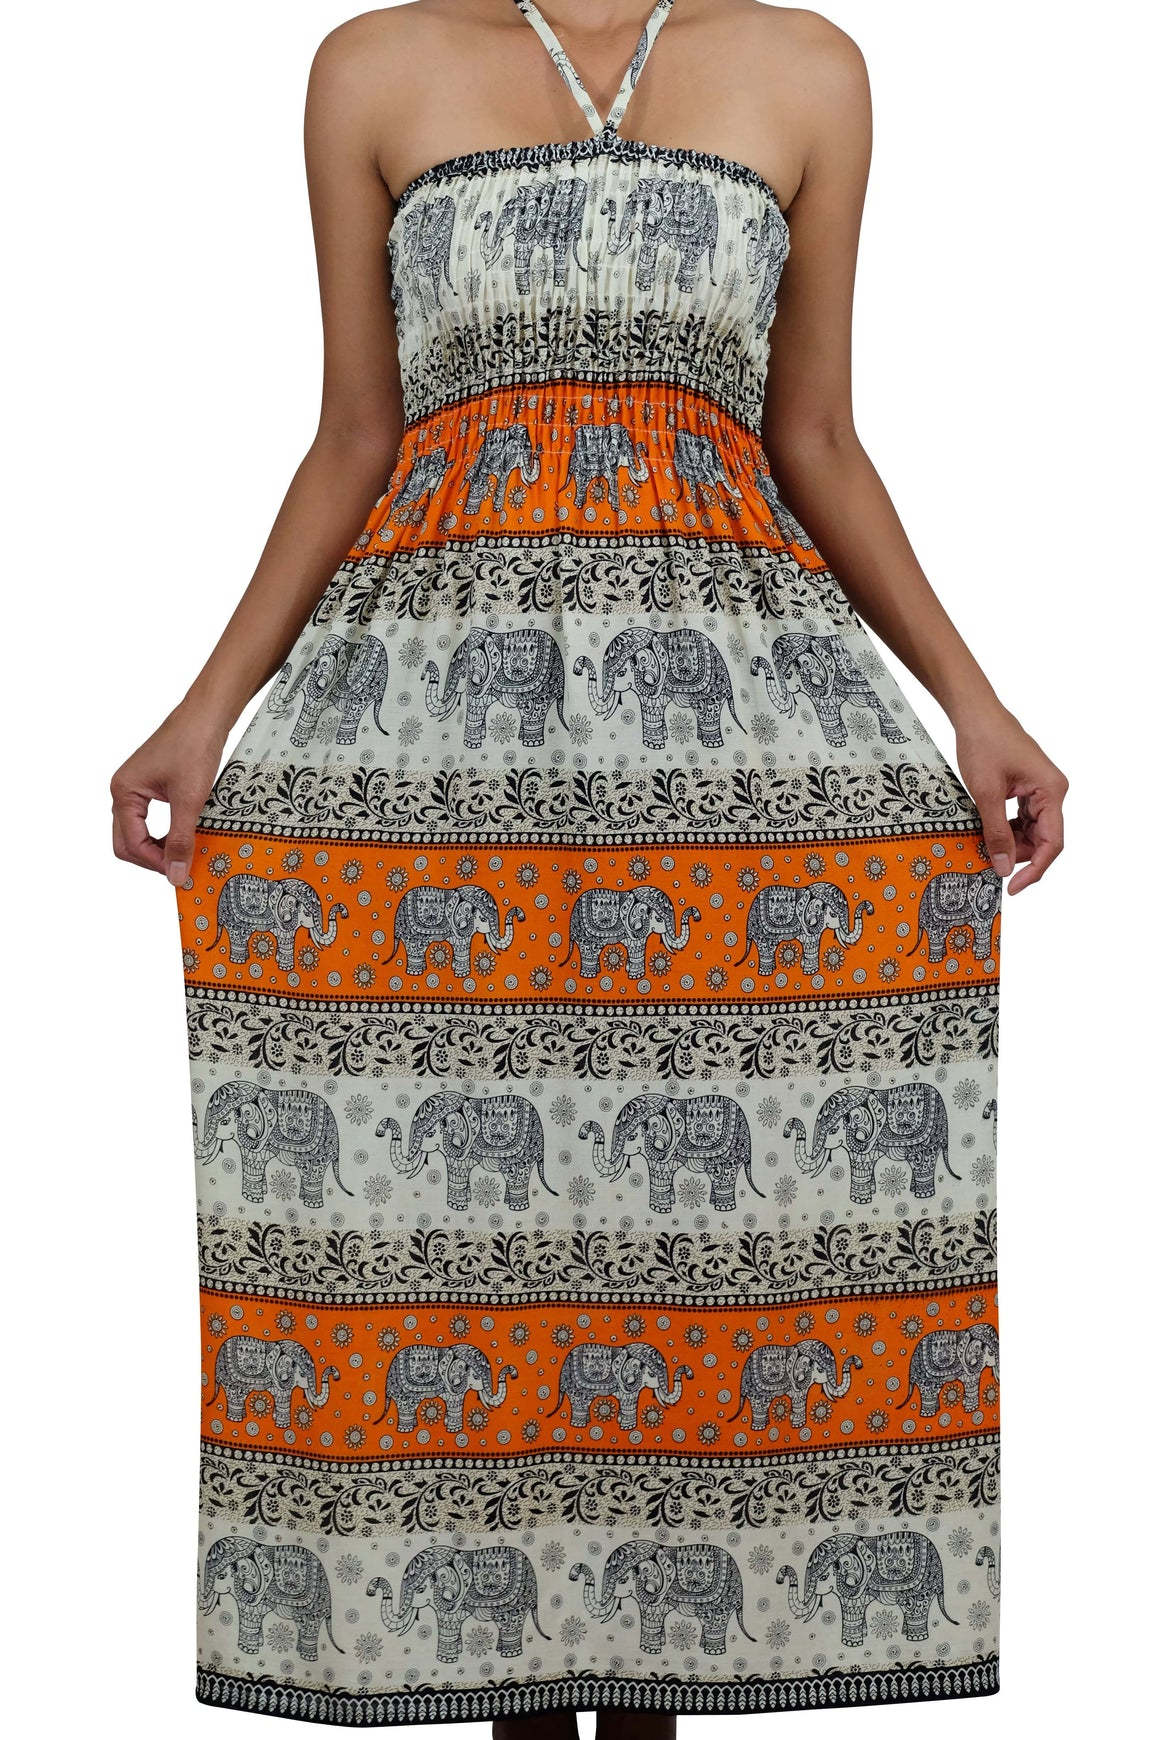 Elephant Shirt Store Dress Chang Phun Halter Elephant Dress White and Light Orange